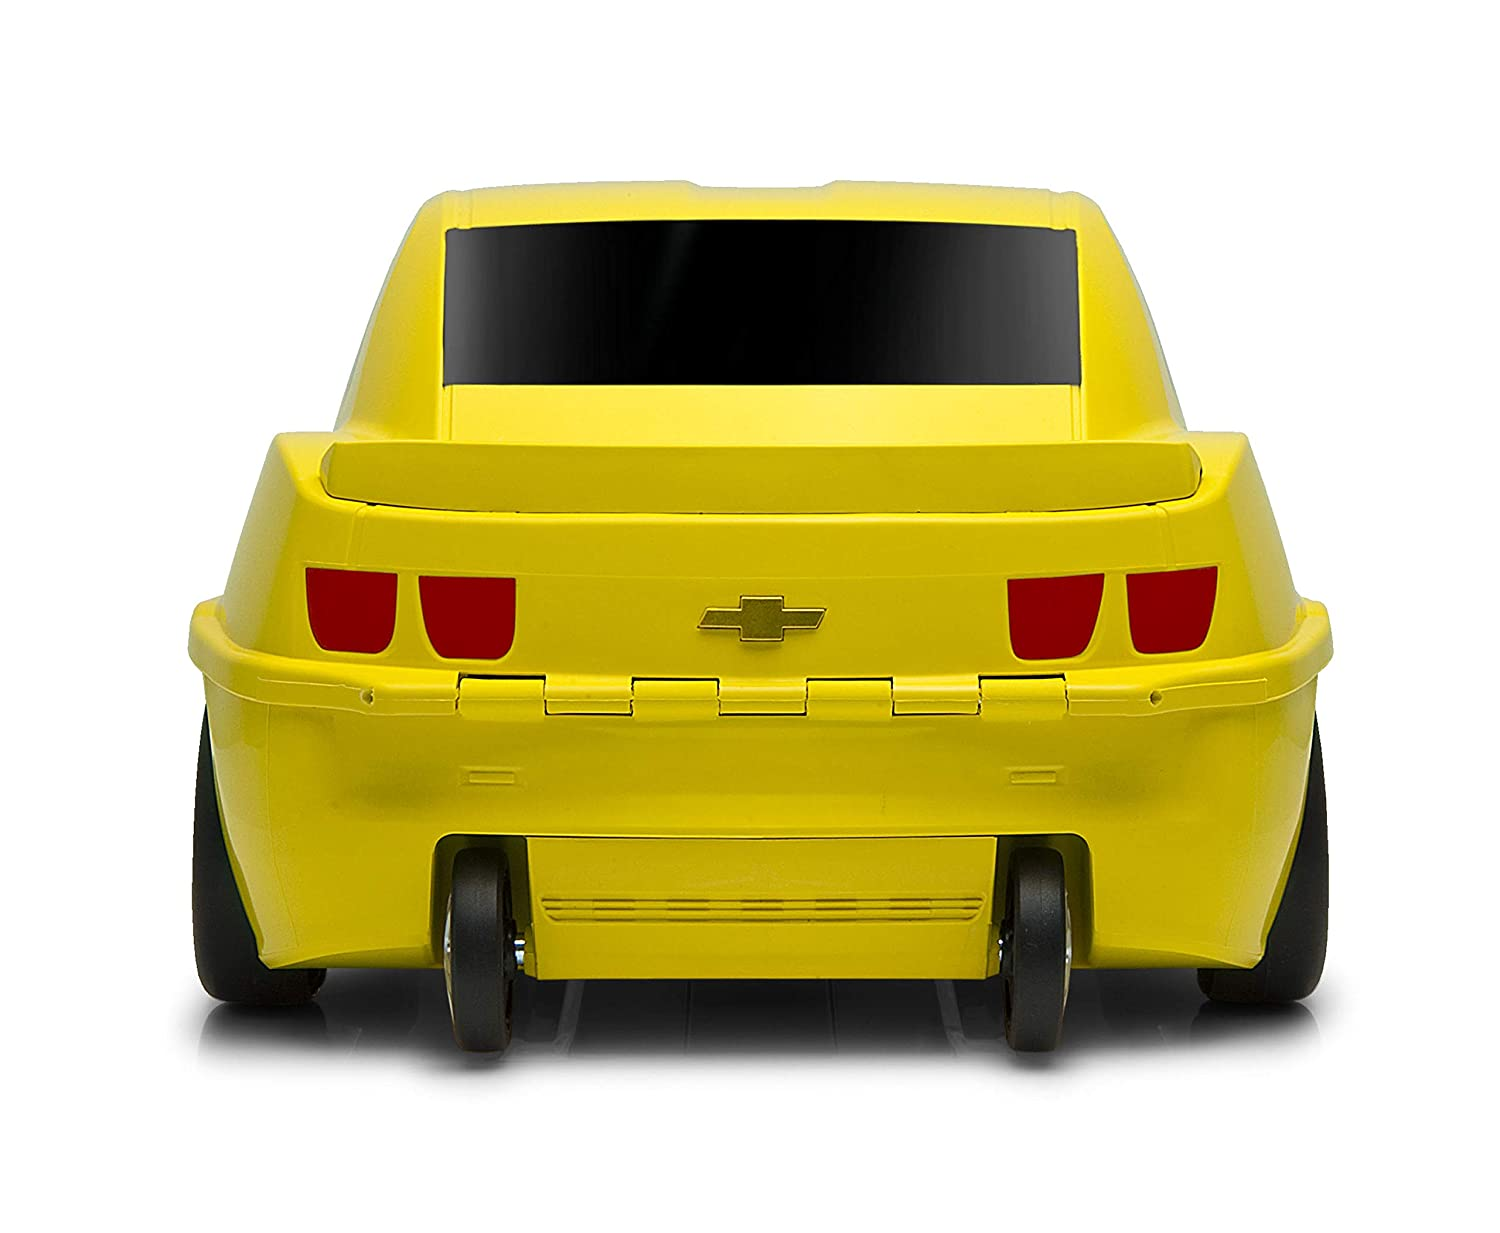 Blue Camaro ZL1-YELLOW Chevrolet Camaro Carry-on Hand Luggage for kids